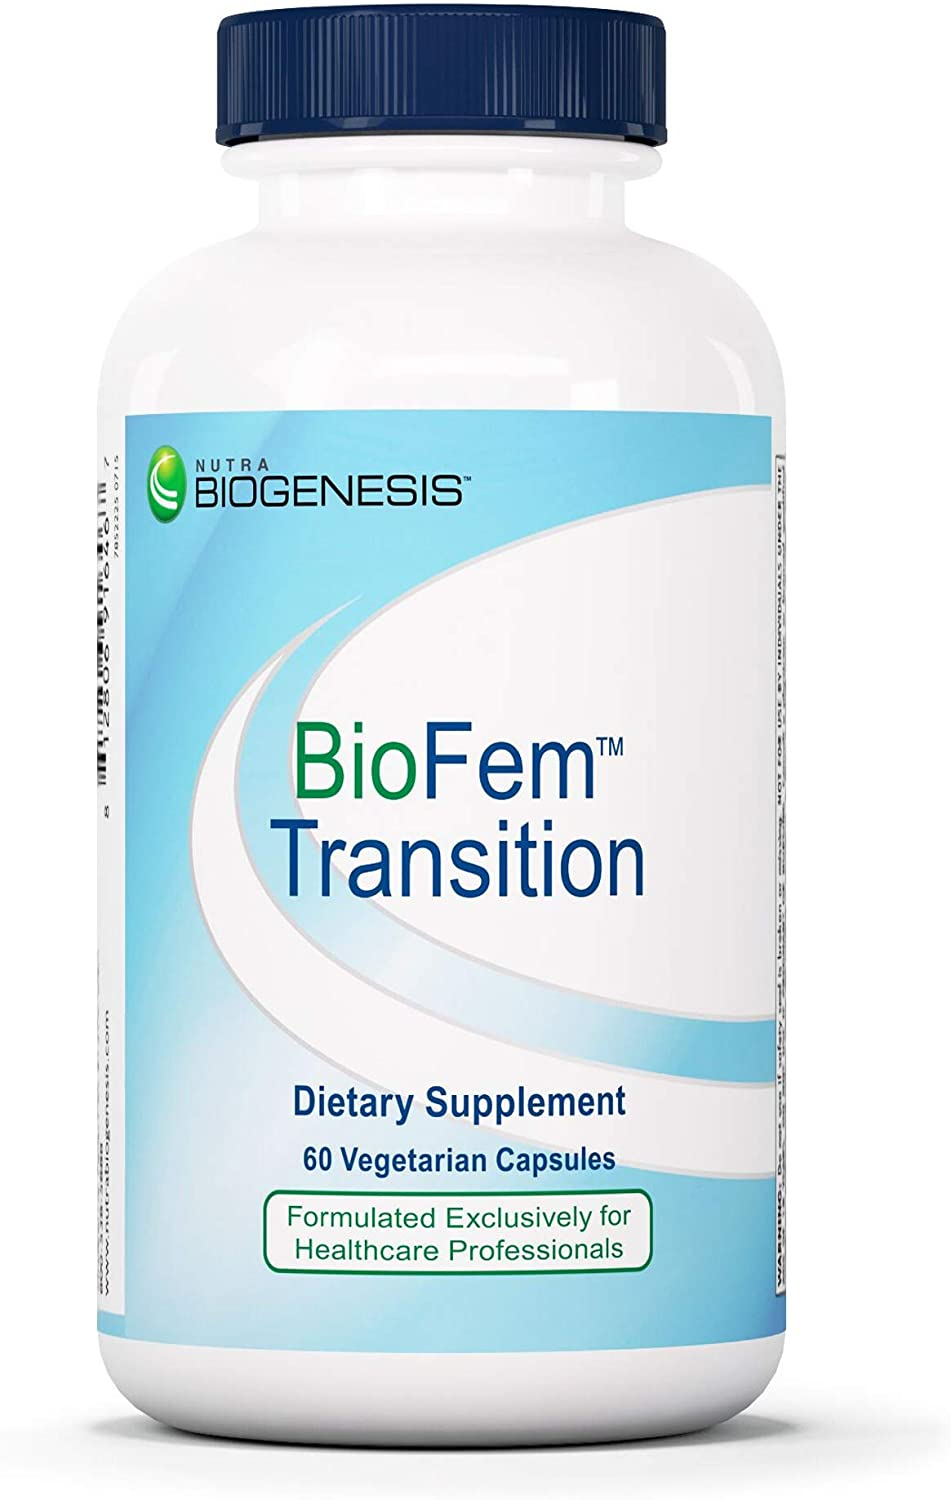 Max 45% OFF Nutra BioGenesis low-pricing - BioFem DHEA Transition Wild Pregnenolone